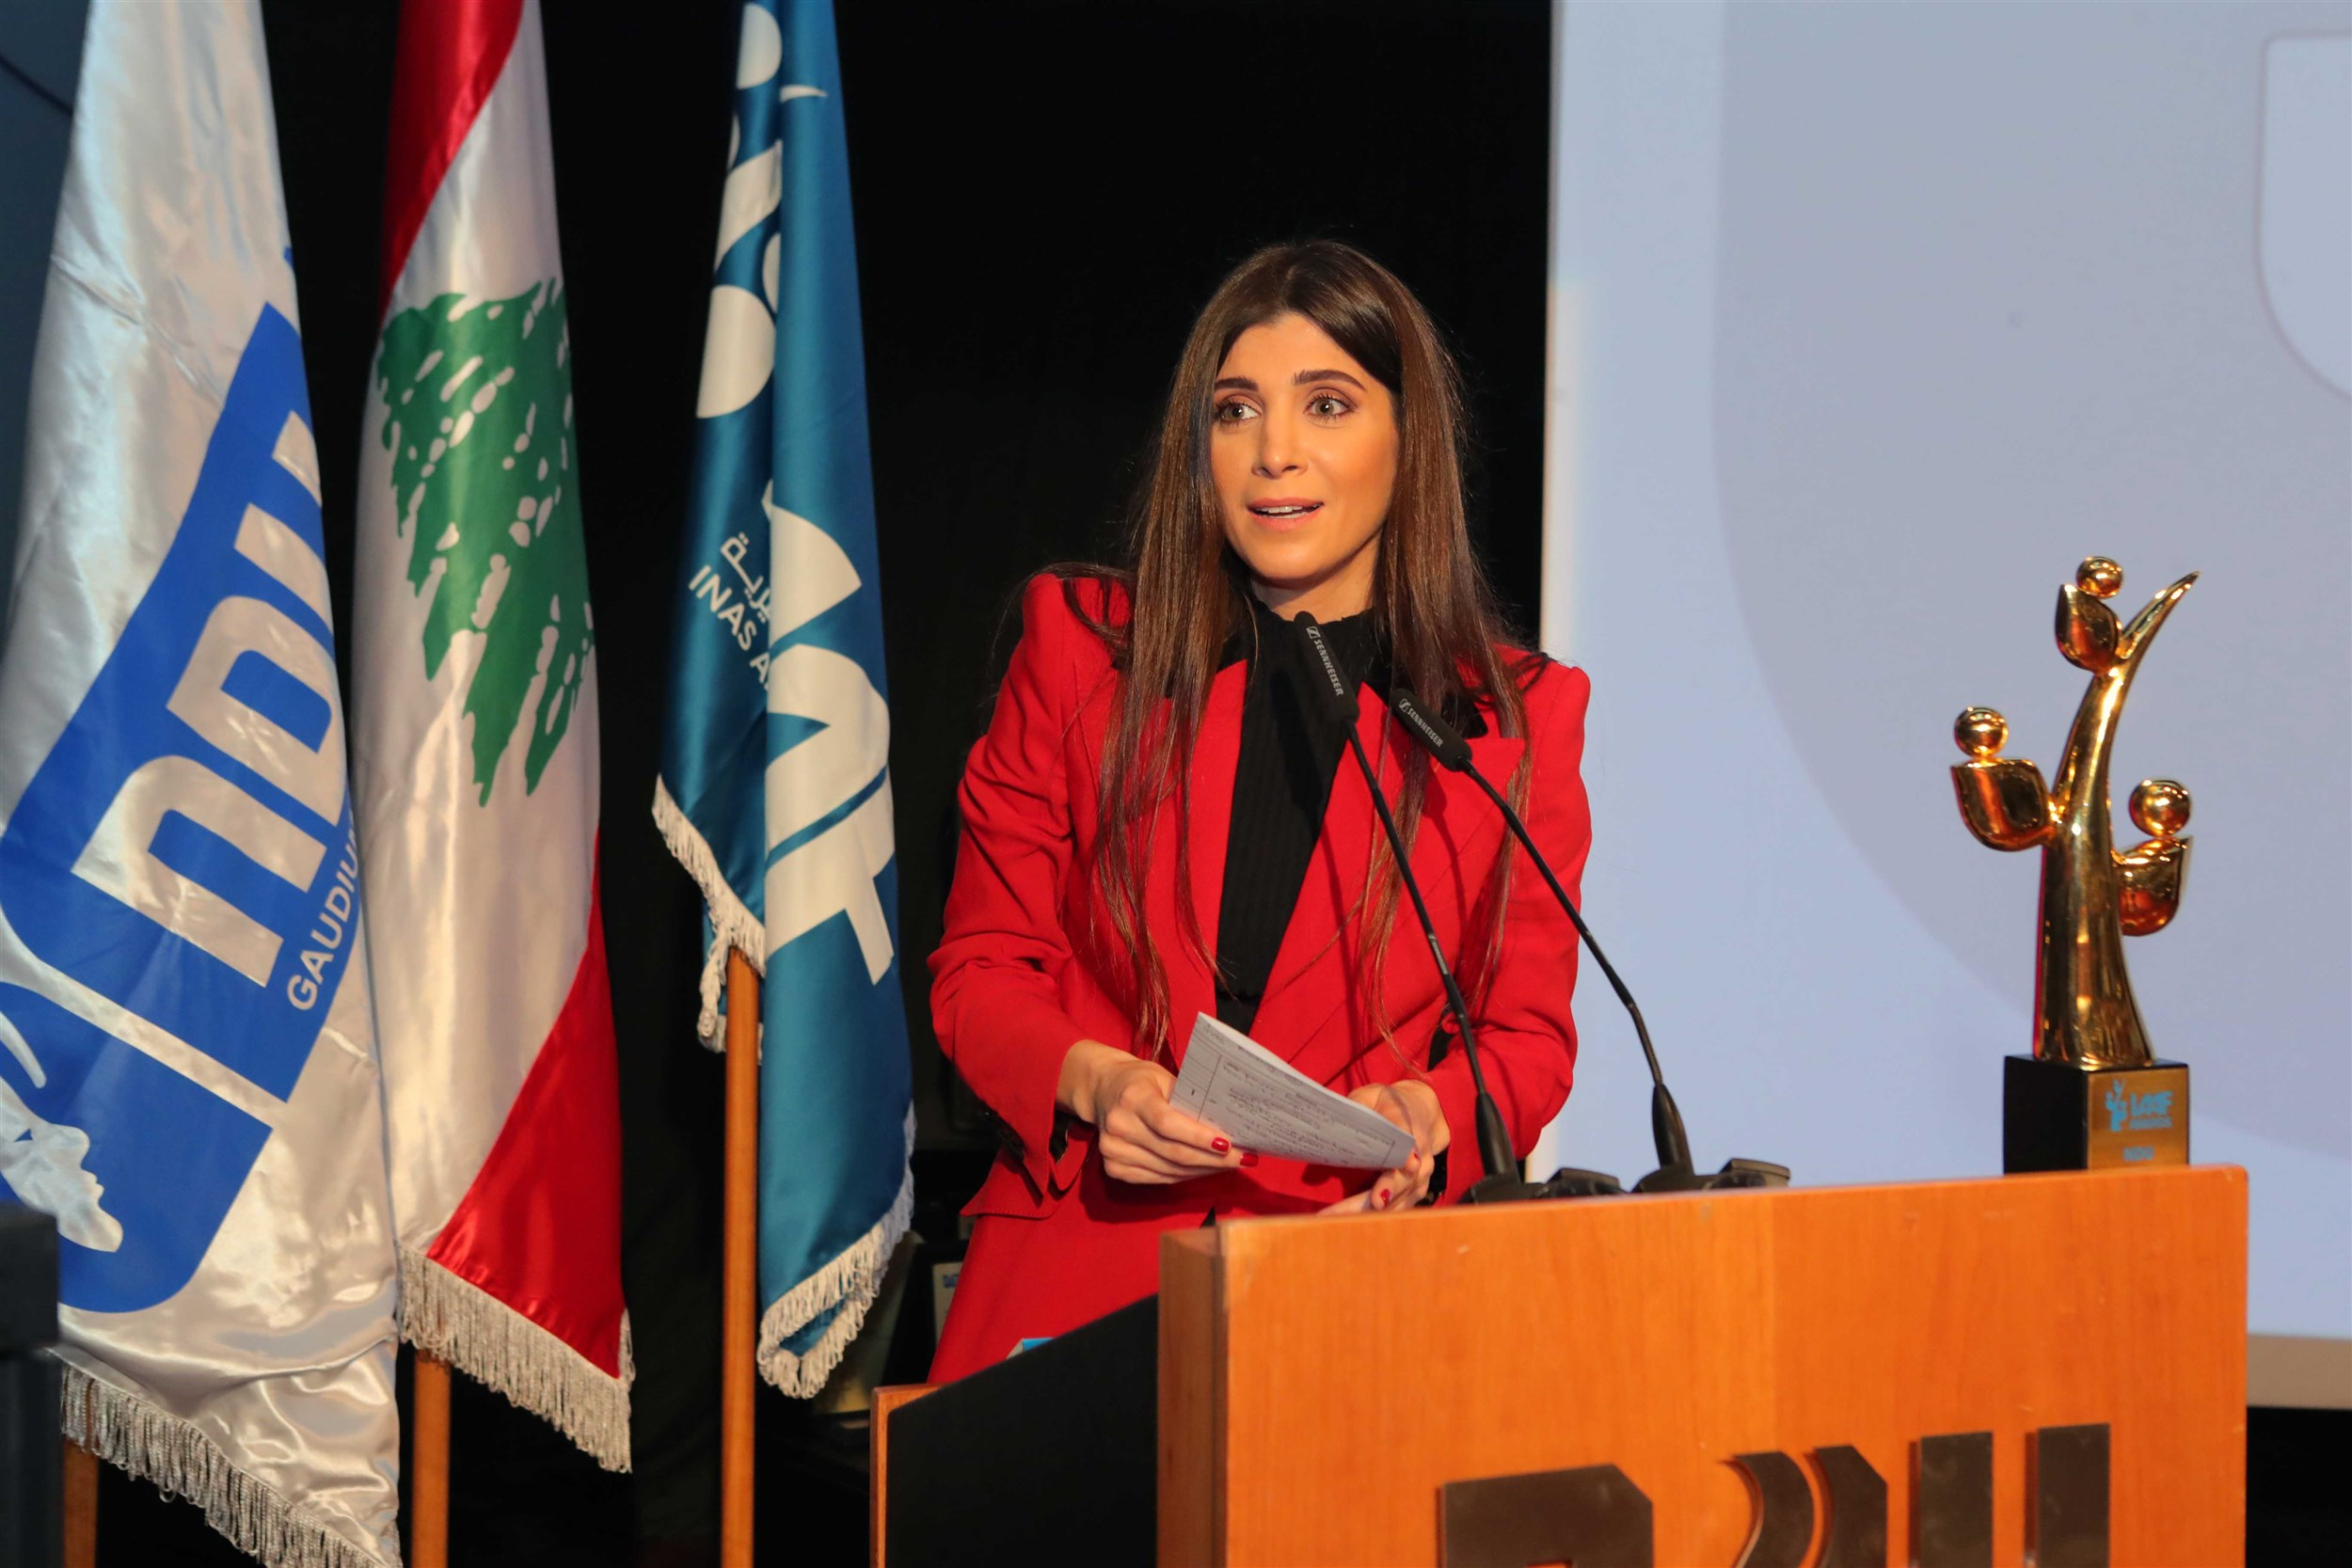 """founder and president of the iaaf mrs. inas al jarmakani states """"there are two paths: the easy one of stability and the daring one that could end up with accomplishing dreams"""". the iaaf is to guide students towards achieving their dreams""""."""